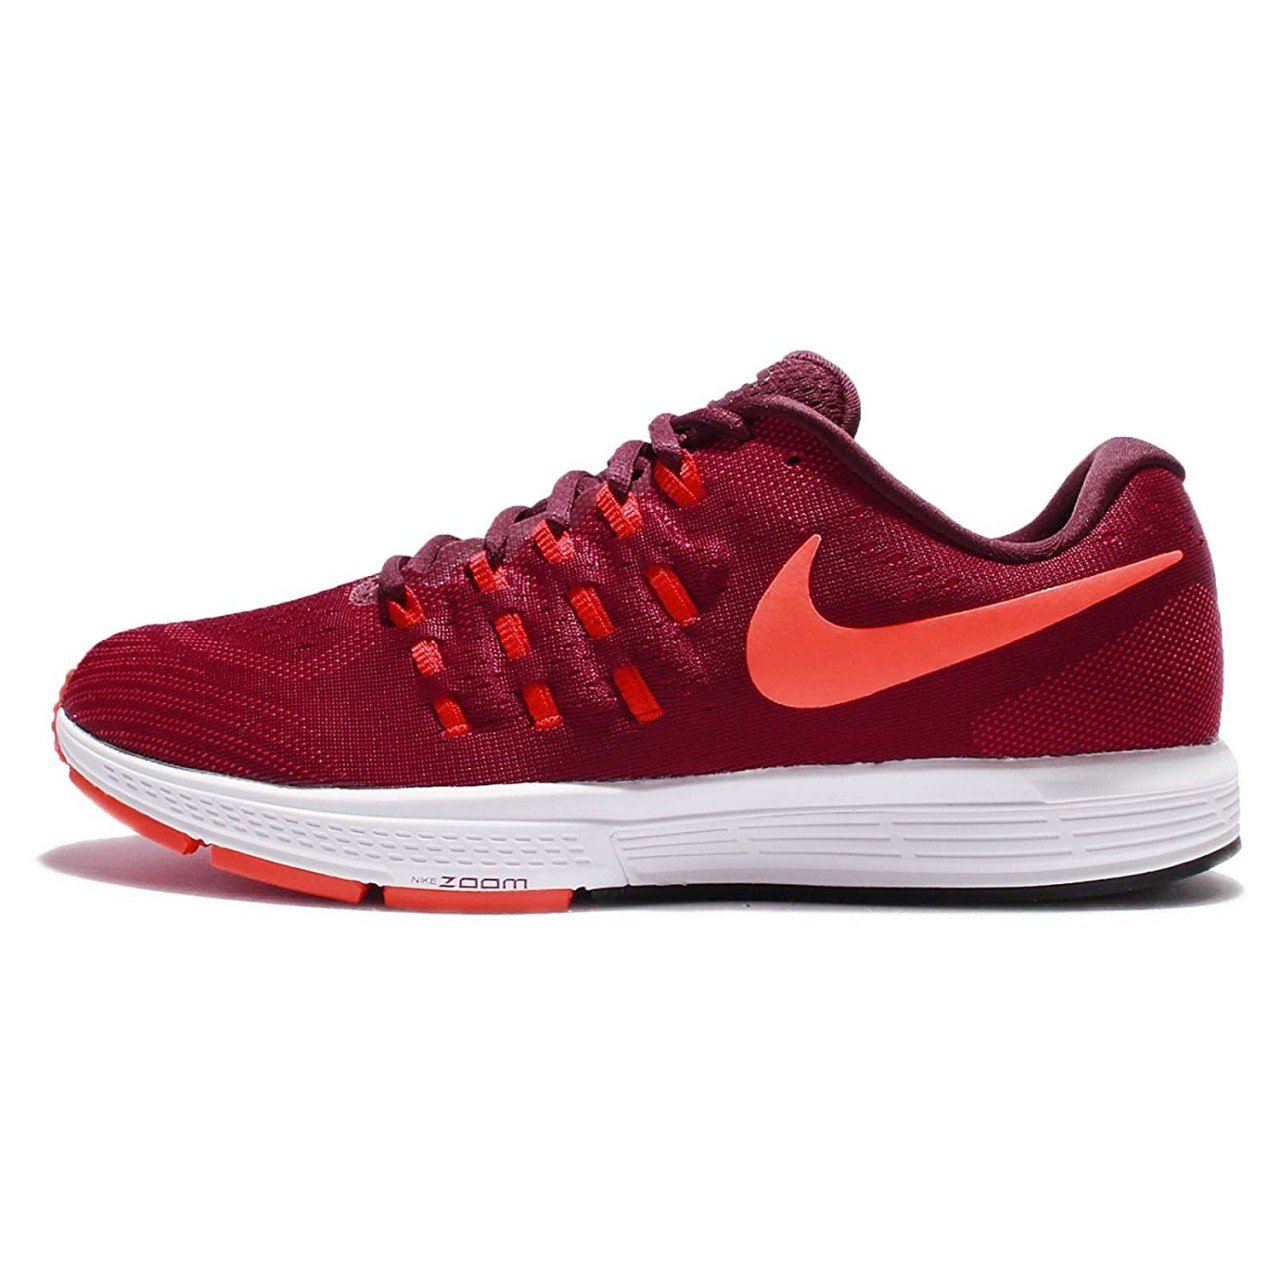 Nike Air Zoom Vomero 11 Running Shoes